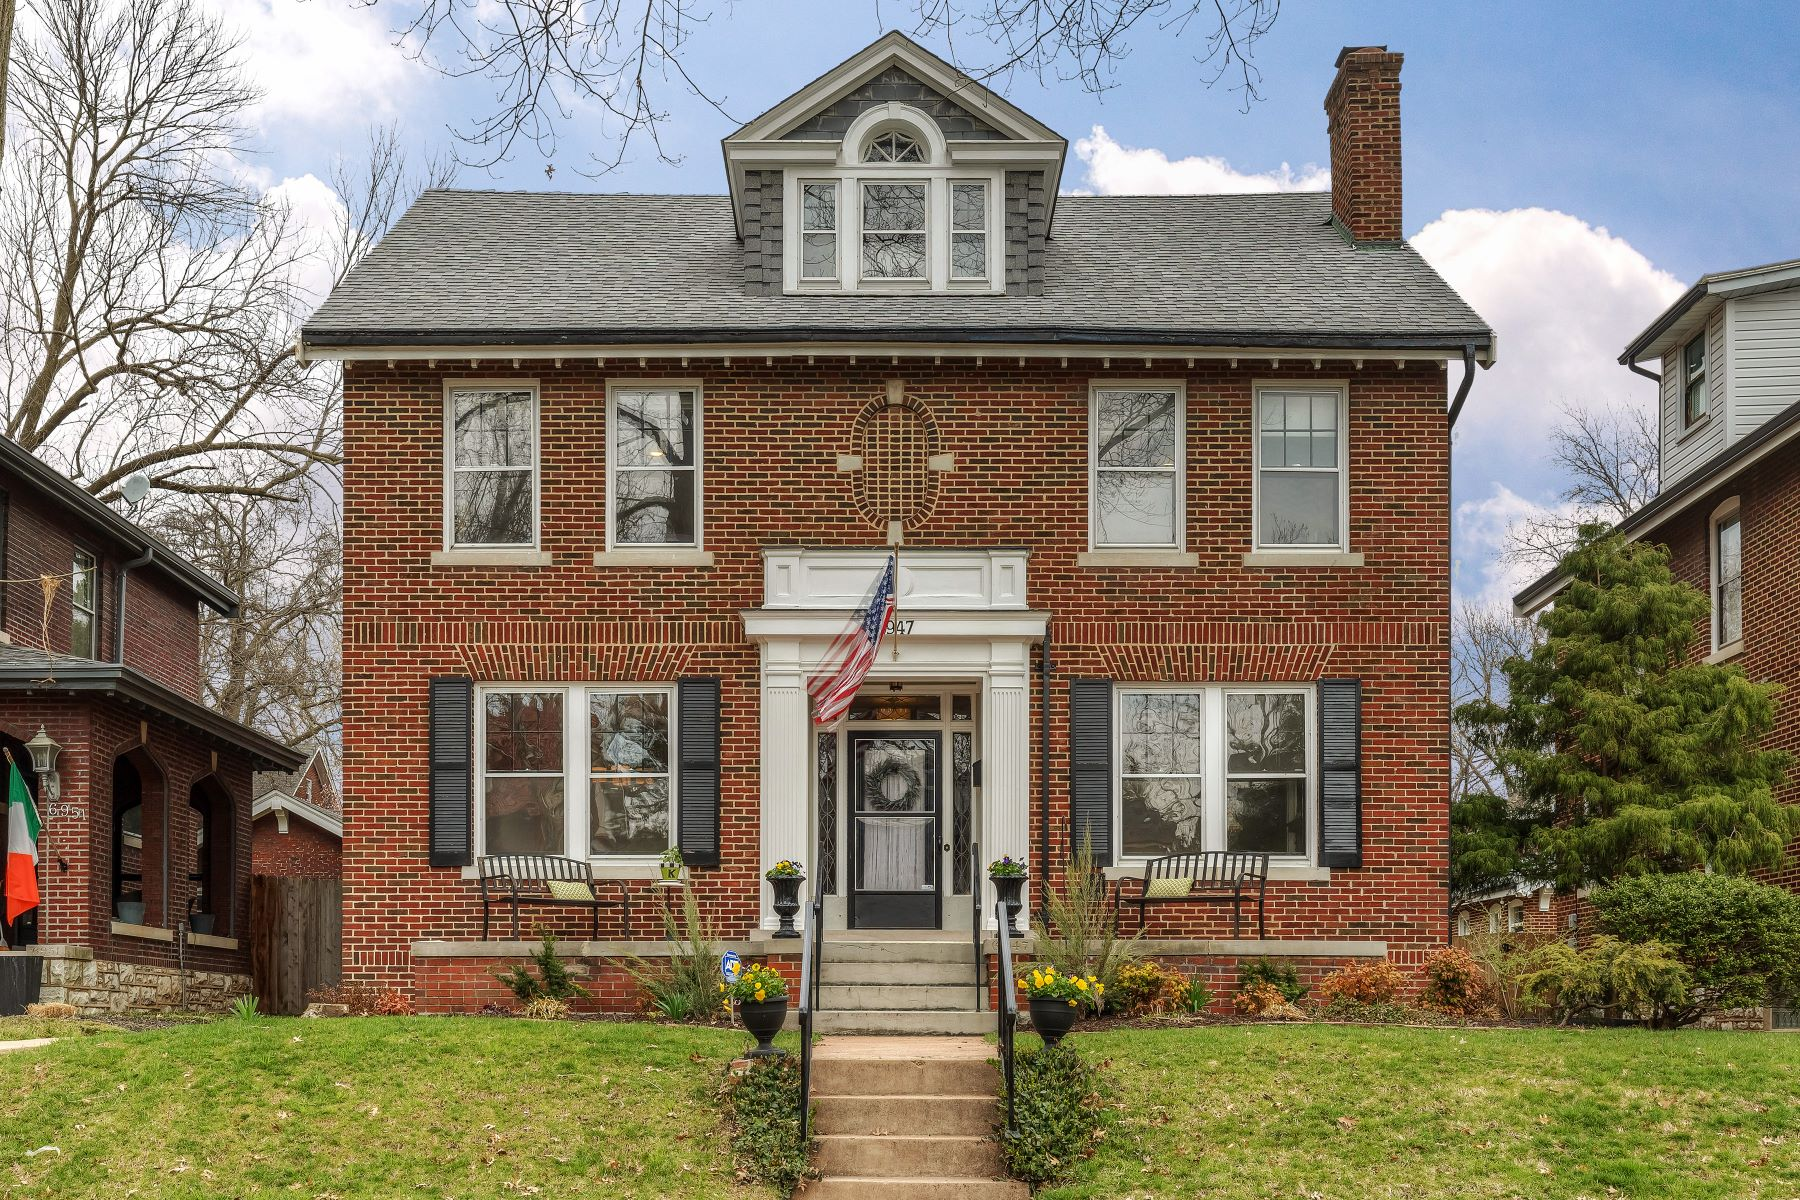 Property for Sale at Exceptional Ames Place Home 6947 Pershing Avenue University City, Missouri 63130 United States